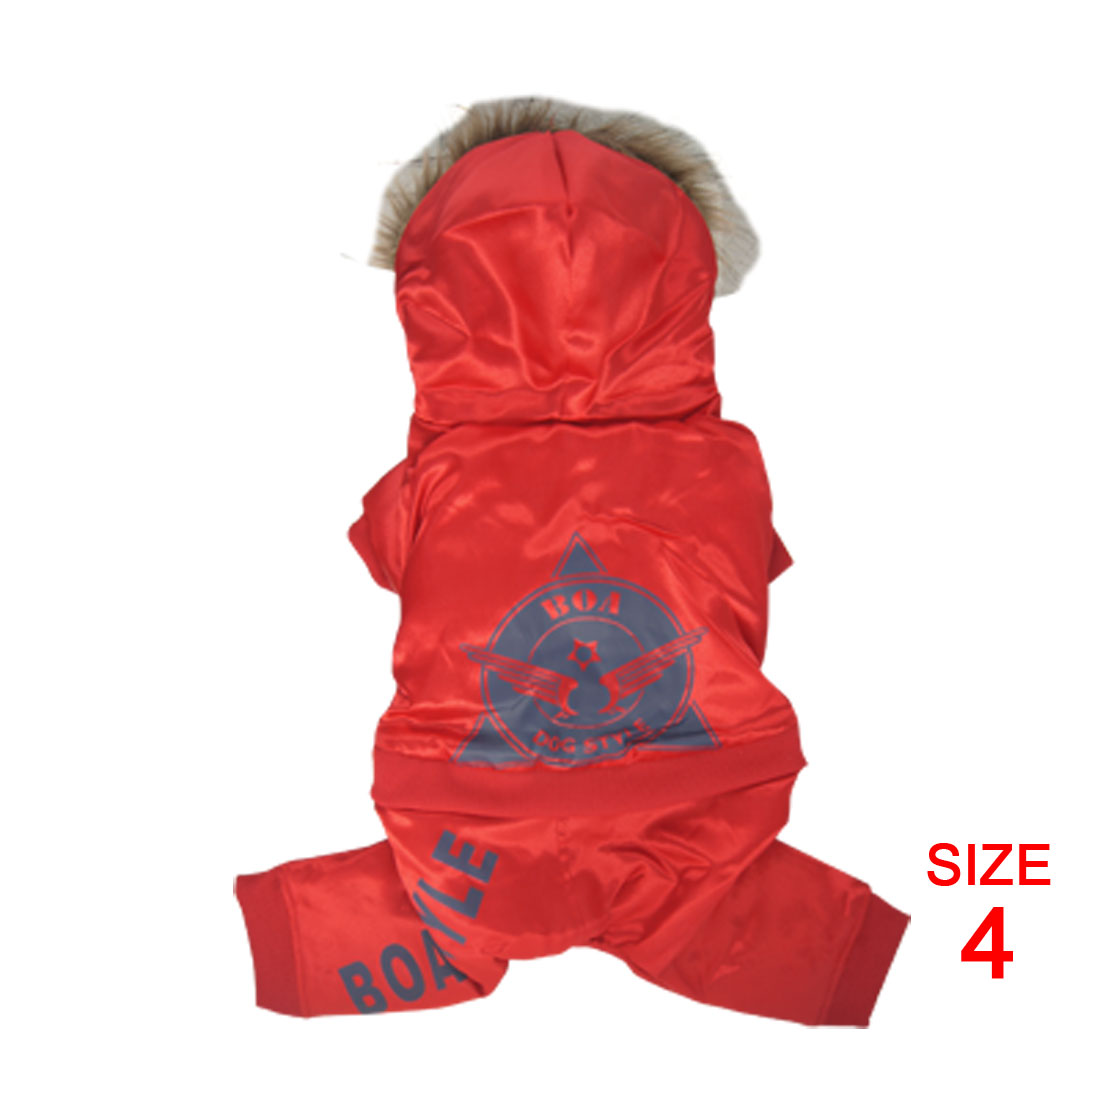 Size XL Red Pet Puppy Dog Apparel Coat Jacket Jumper Pants Hoodies Clothes